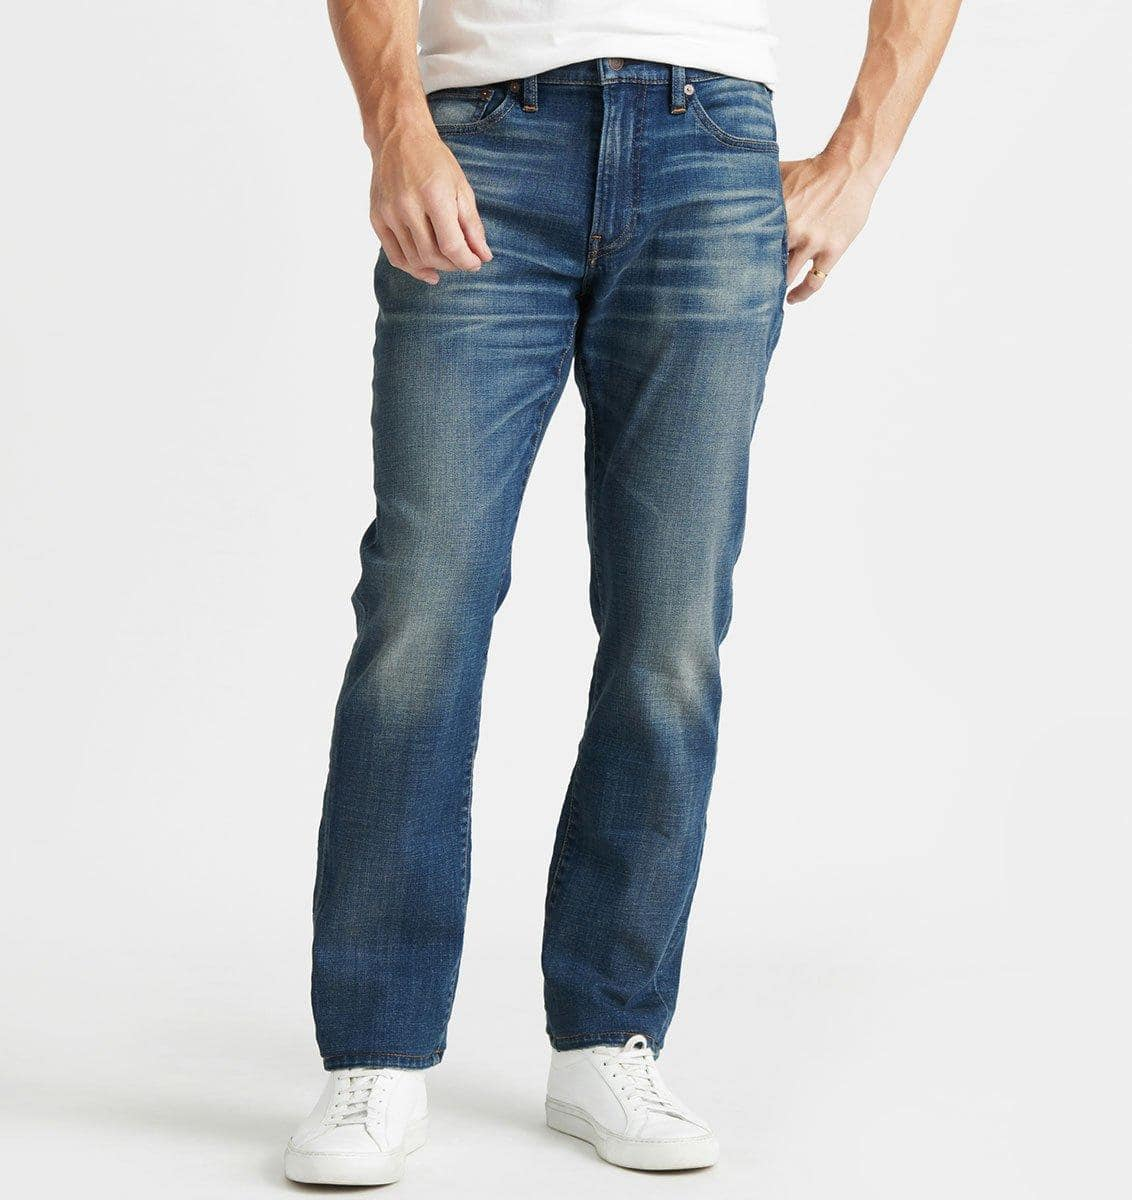 Lucky Brand Clothing Sale everything 50% off + other CB